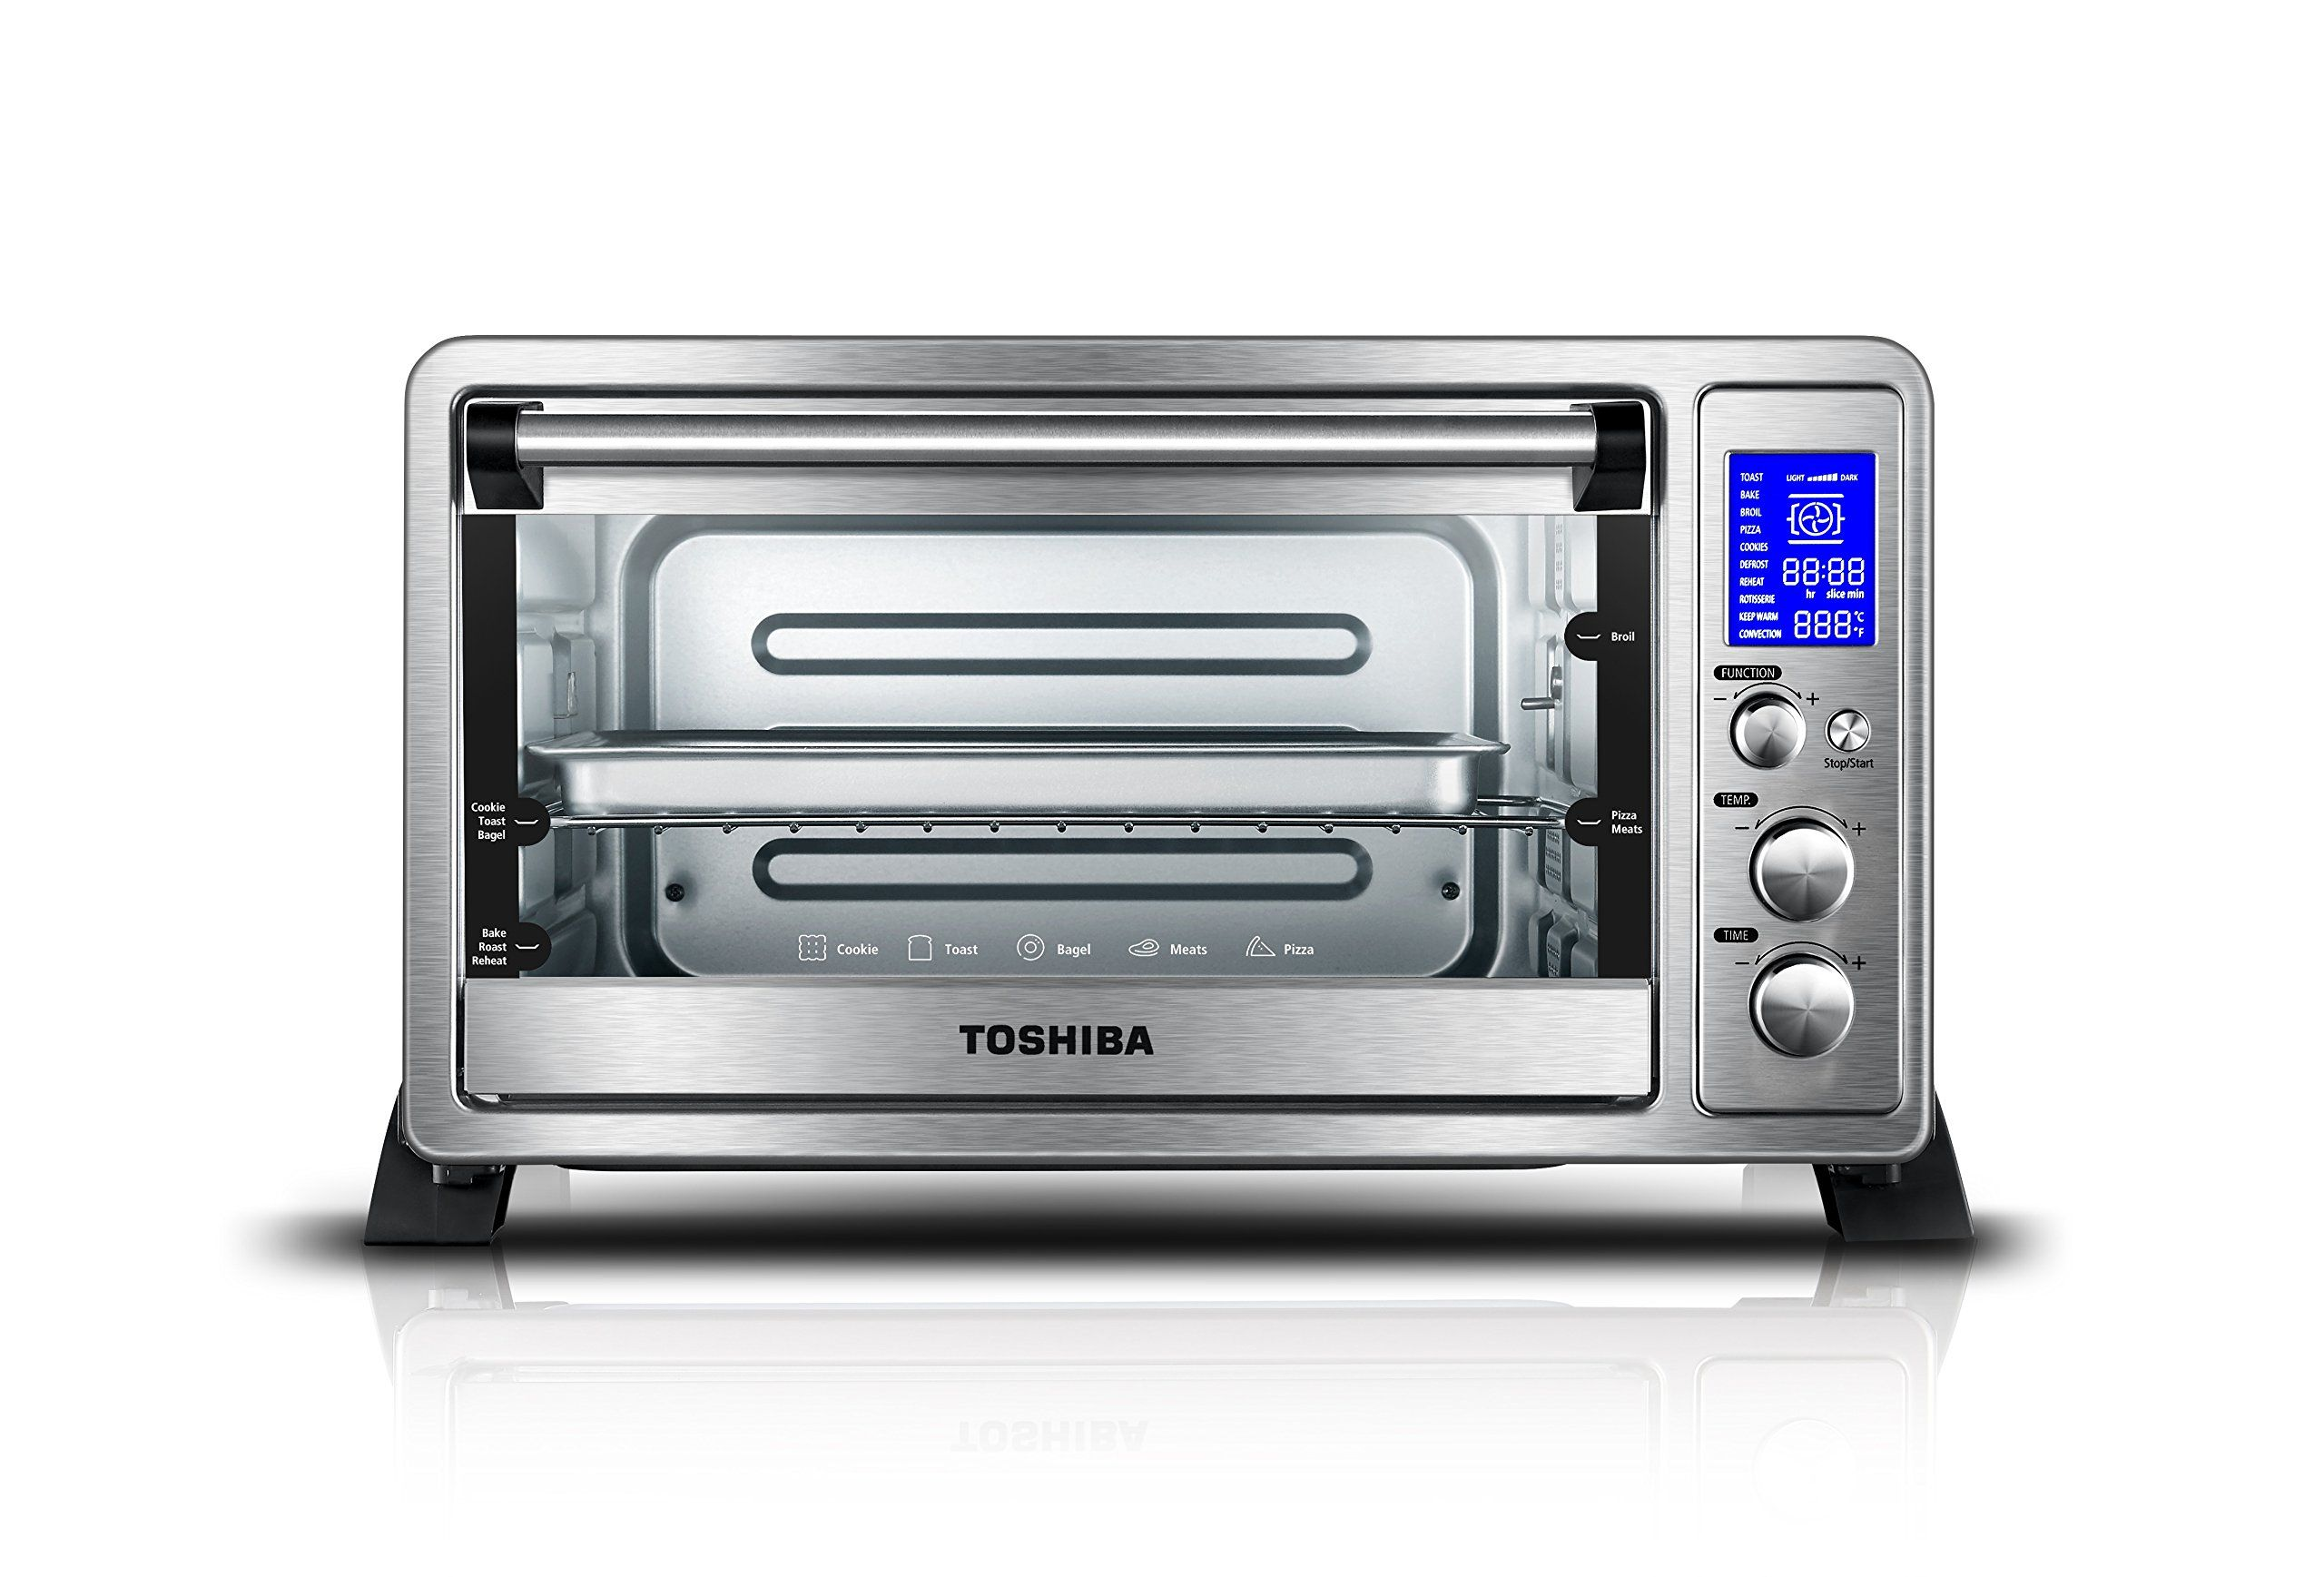 Toshiba AC25CEWSS Digital Oven with Convection/Toast/Bake